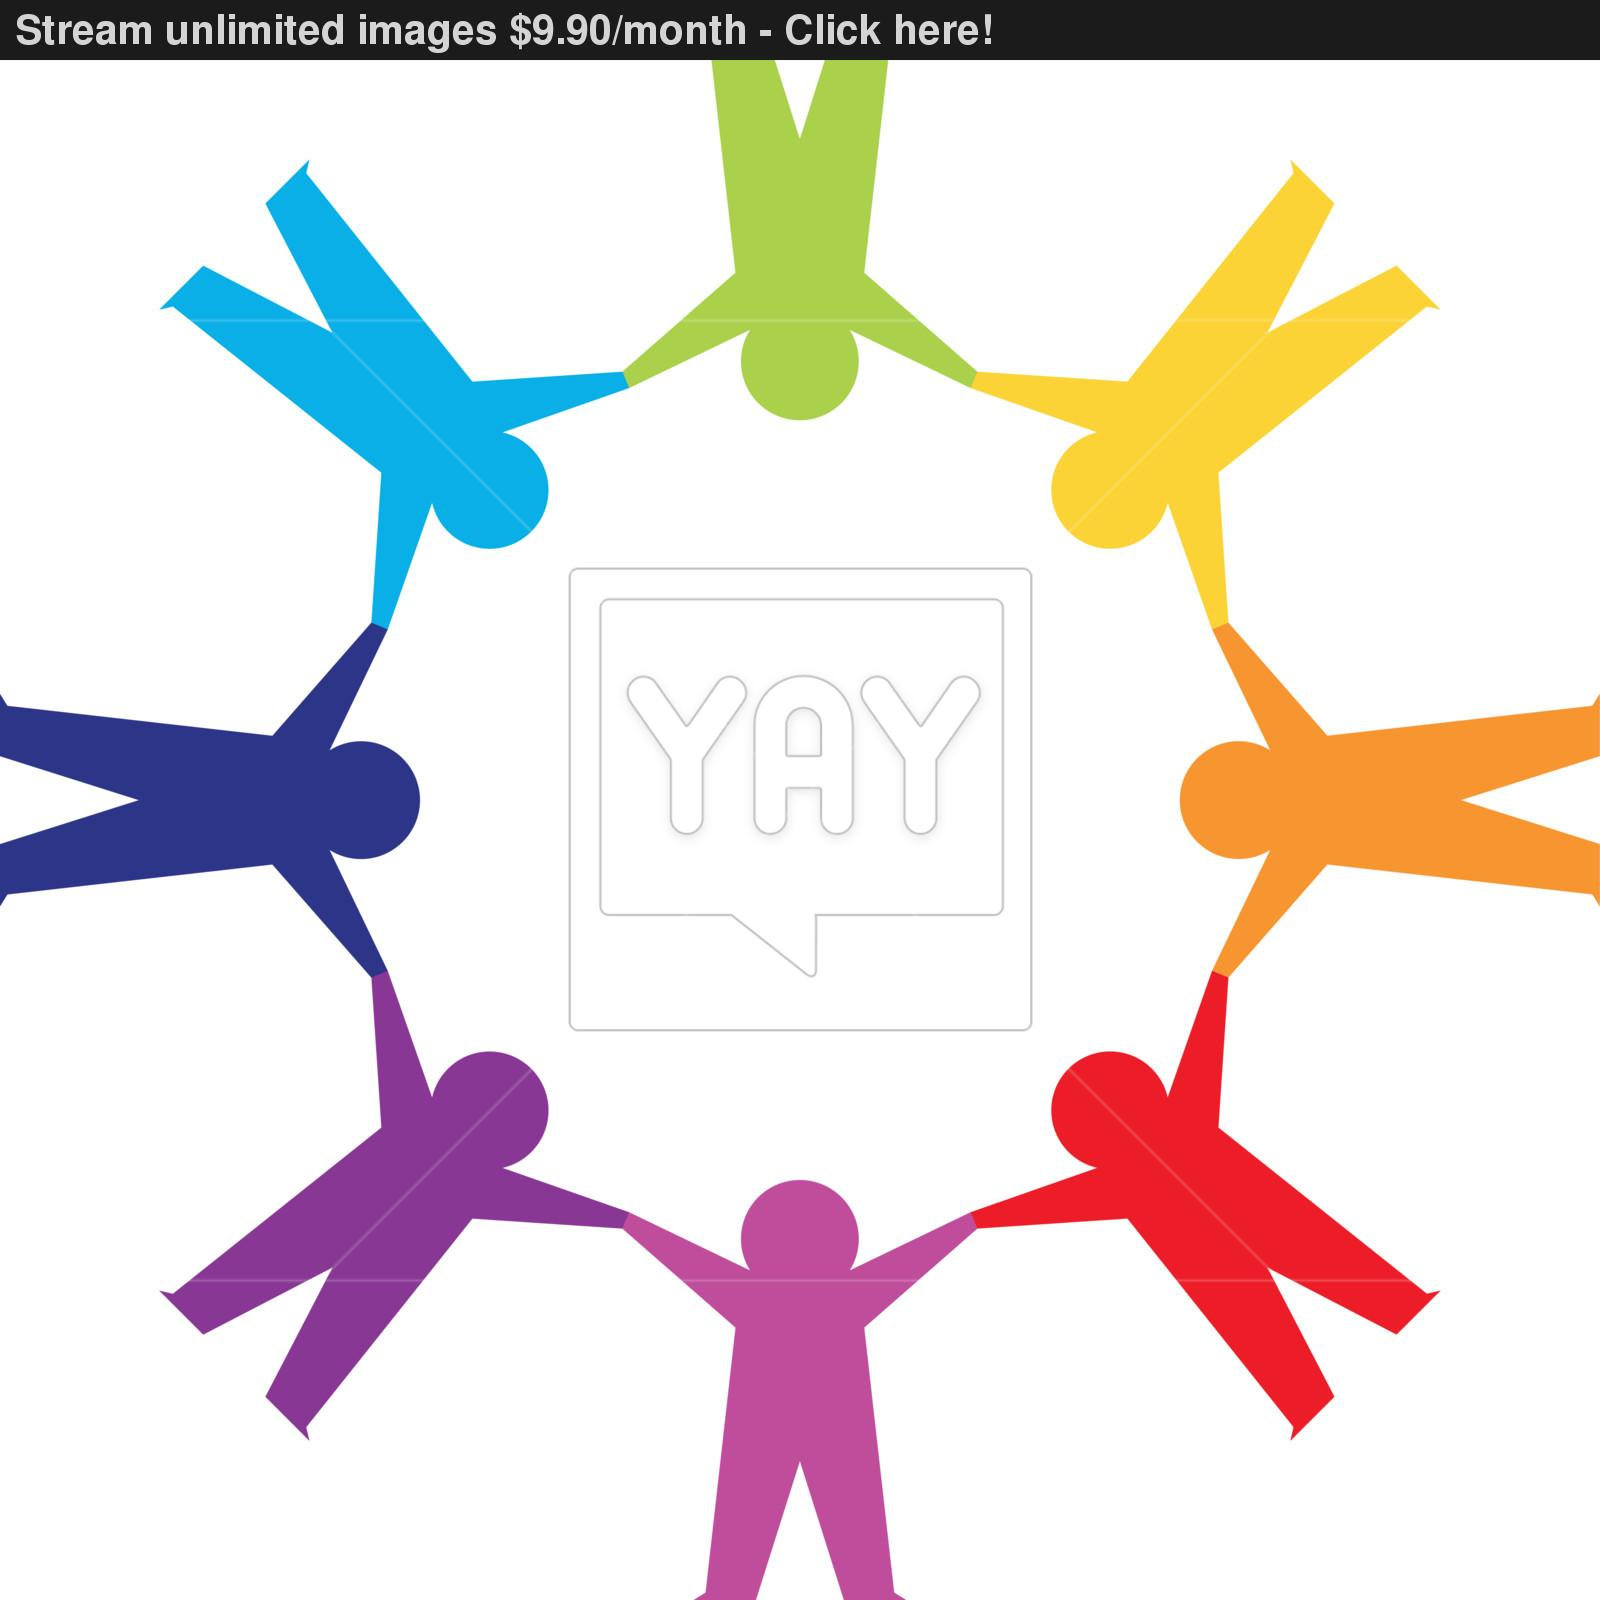 1600x1600 Paper People In Circle Holding Hands Vector